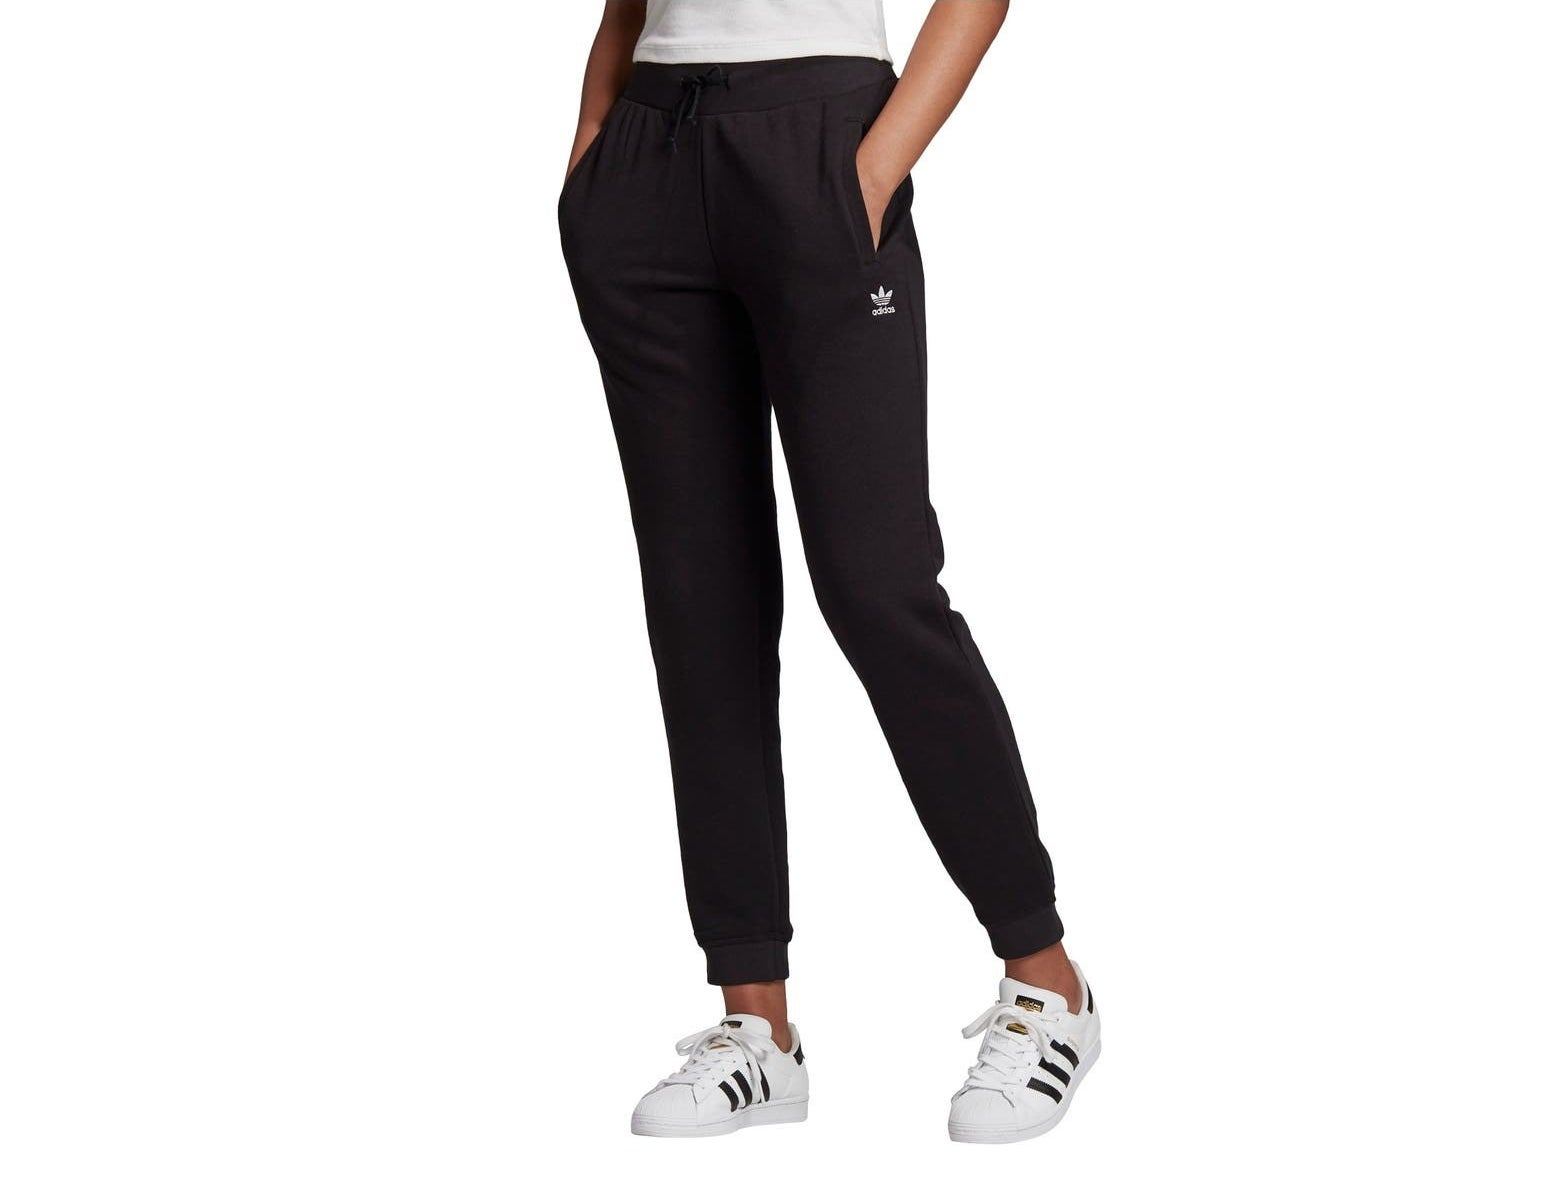 Model wearing the black sweatpants with a mini Adidas logo underneath the side pocket